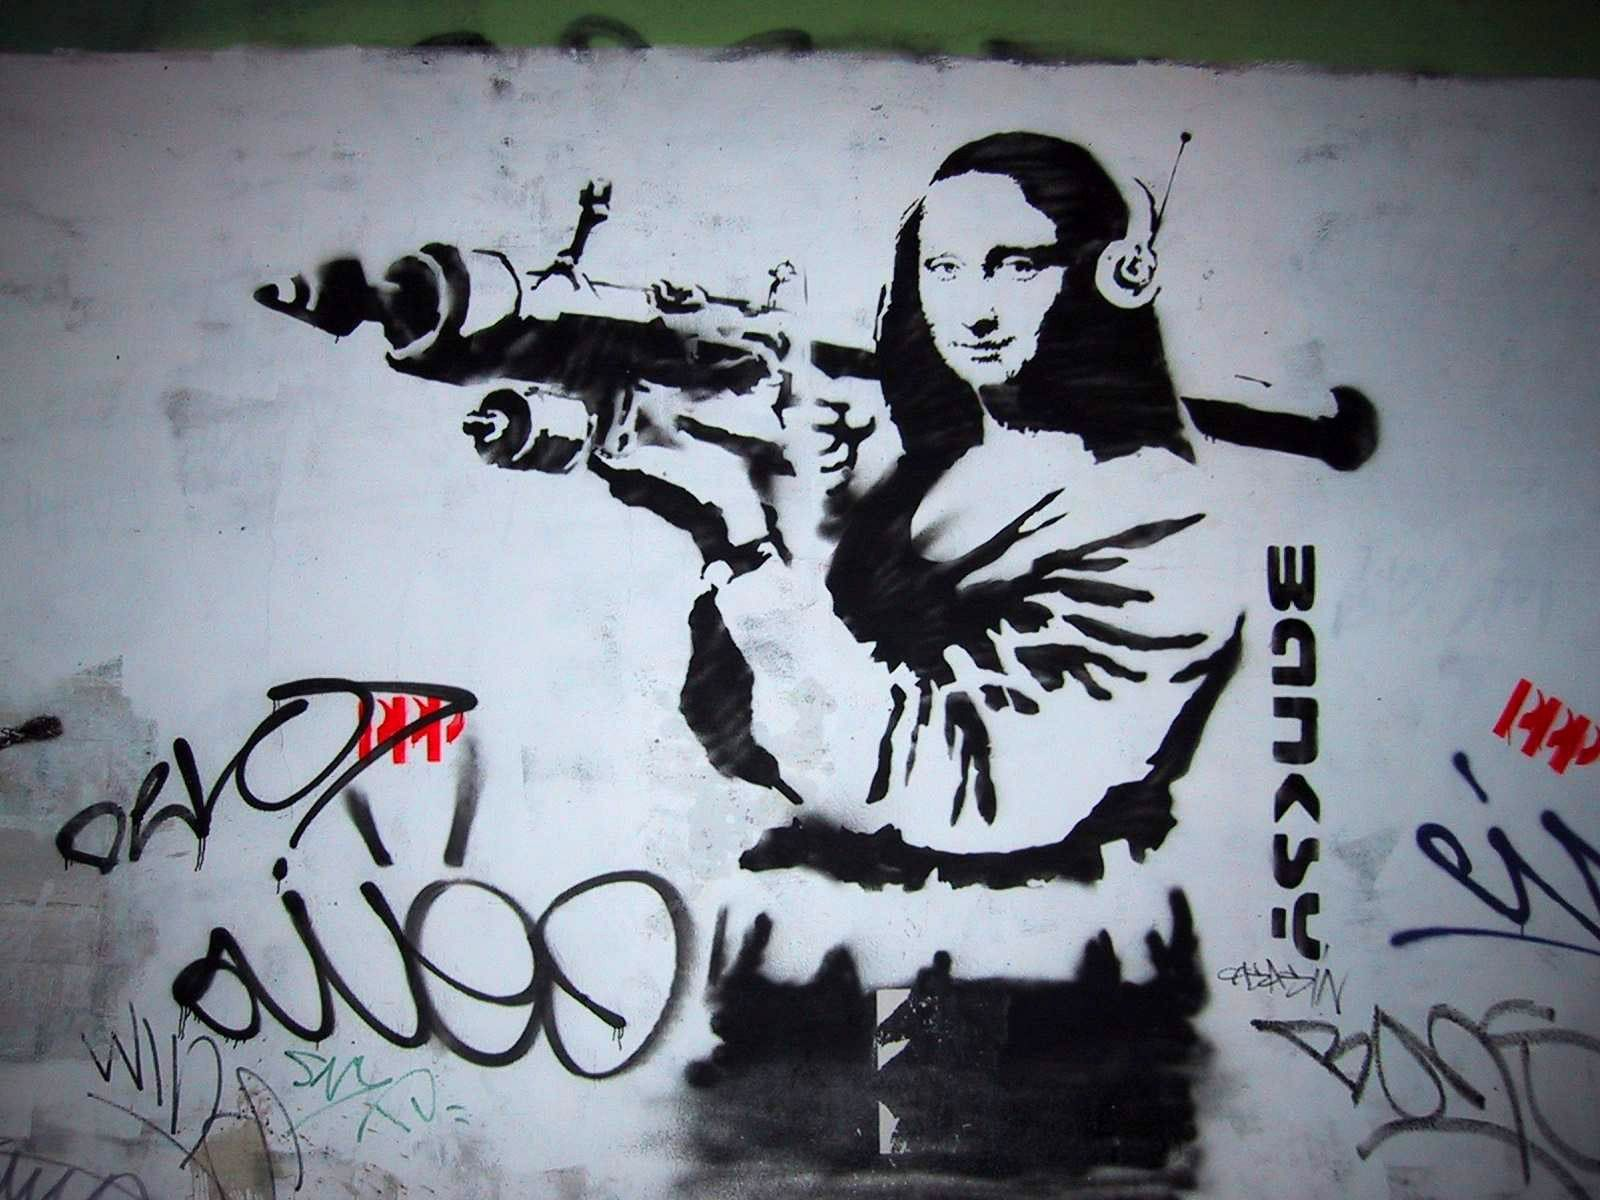 Graffiti art quotes - Find This Pin And More On Graffiti Writings Quotes By Jestinzacharia